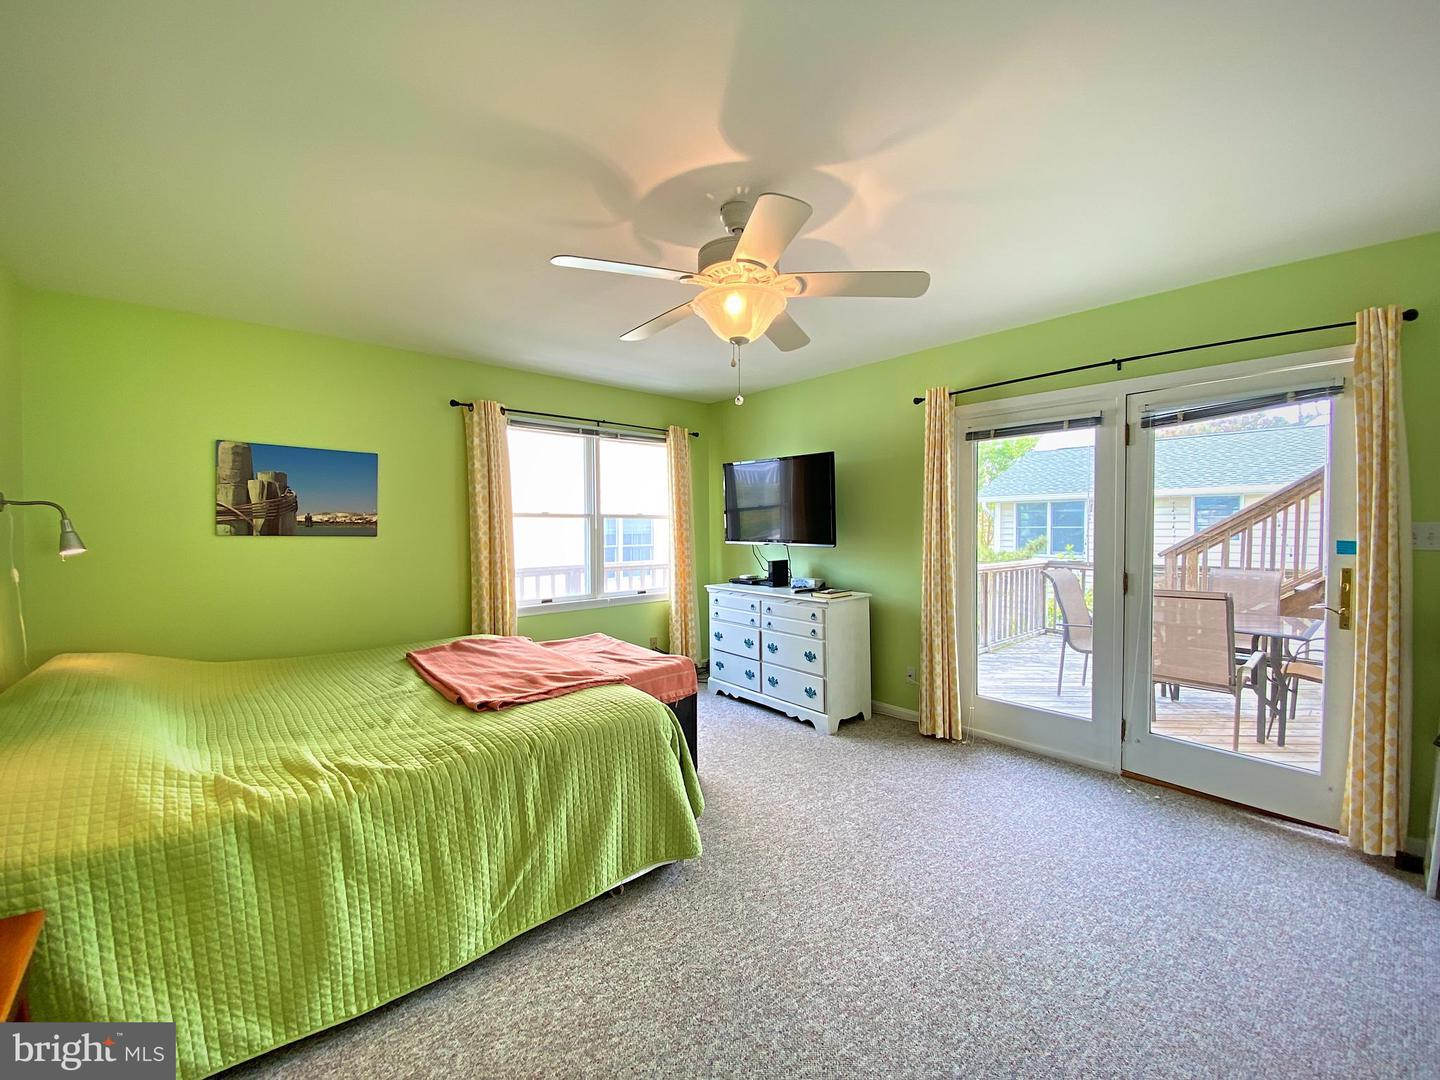 DESU161746-304145716427-2020-05-30-11-15-25 116 Hollywood St | Bethany Beach, DE Real Estate For Sale | MLS# Desu161746  - Ocean Atlantic